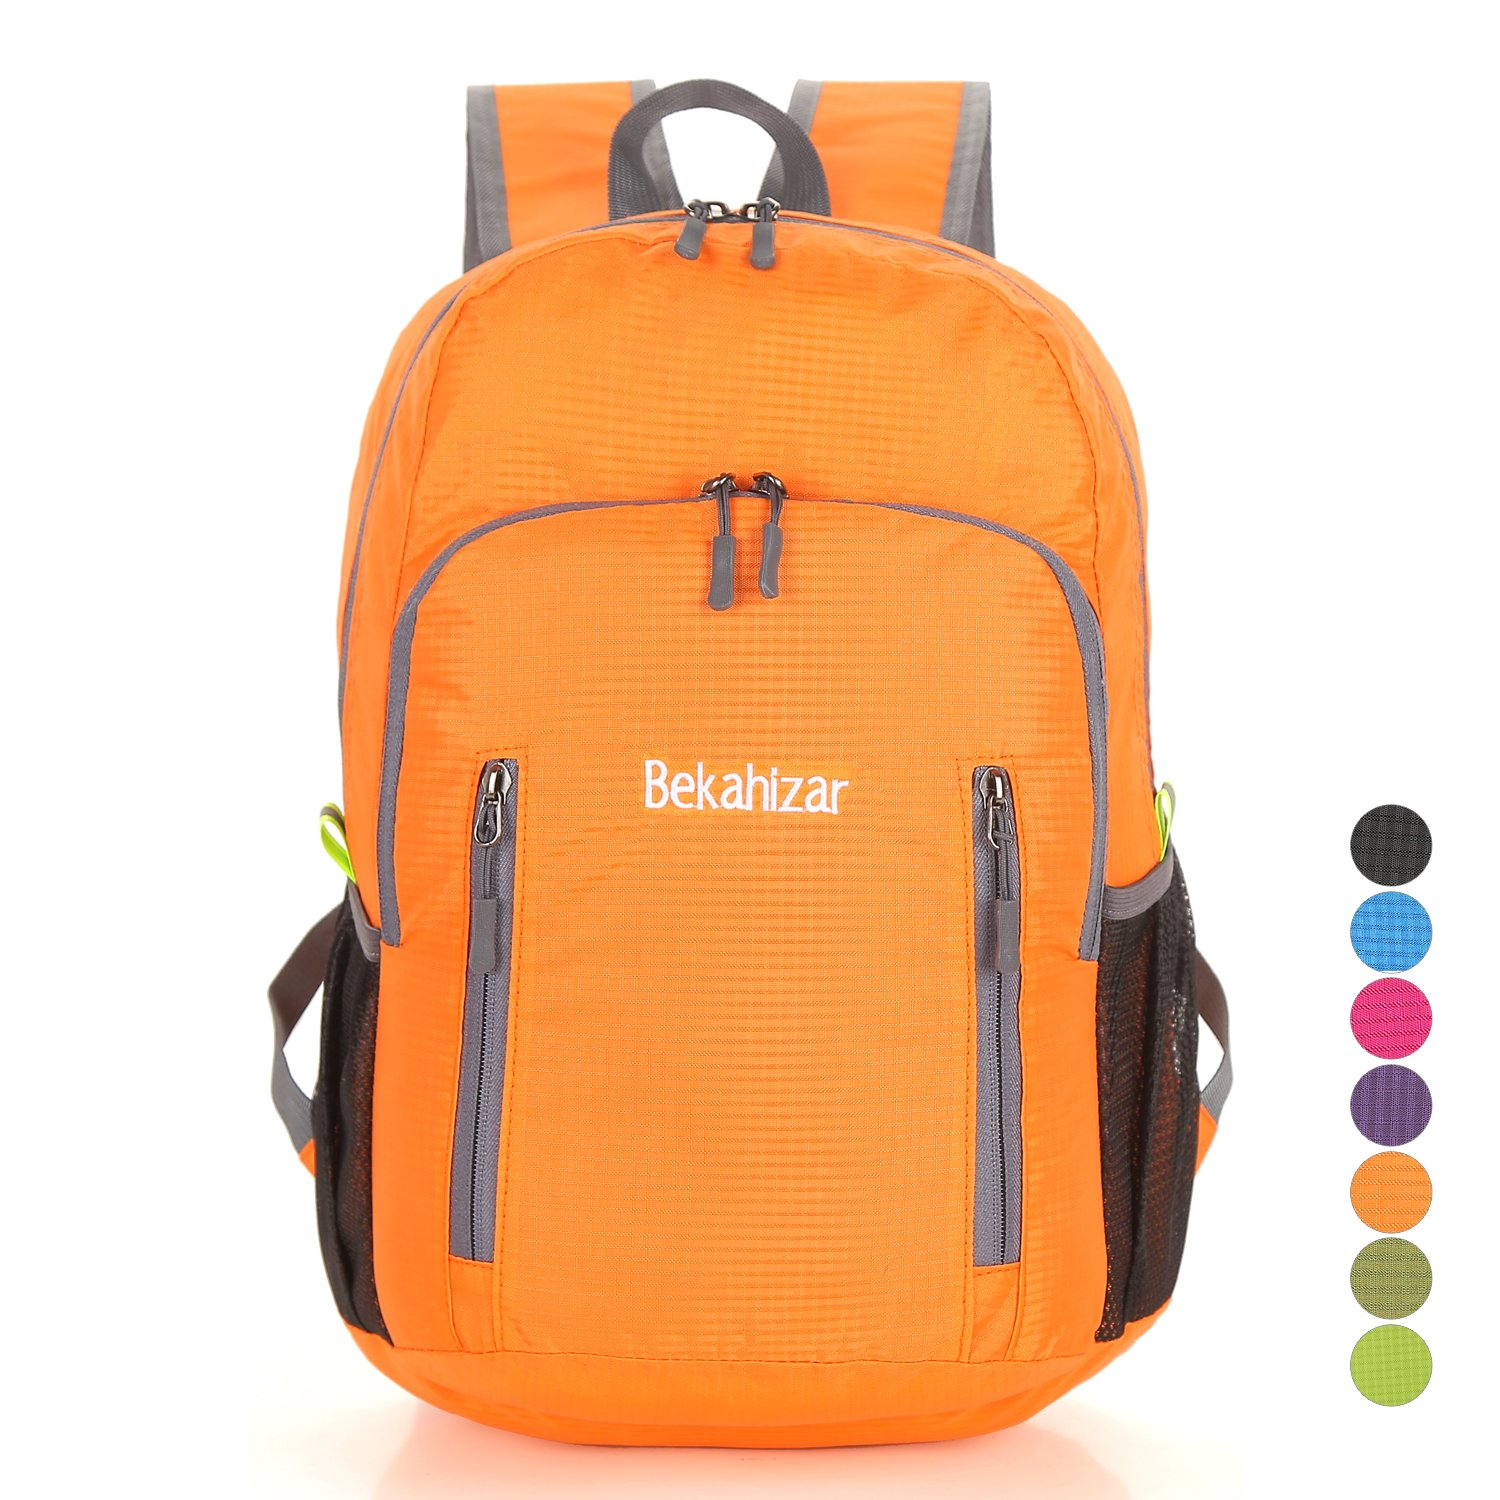 f4a78d98d227 Bekahizar 20L Ultra Light Weight Backpack Foldable Hiking Daypack Rucksack  Water